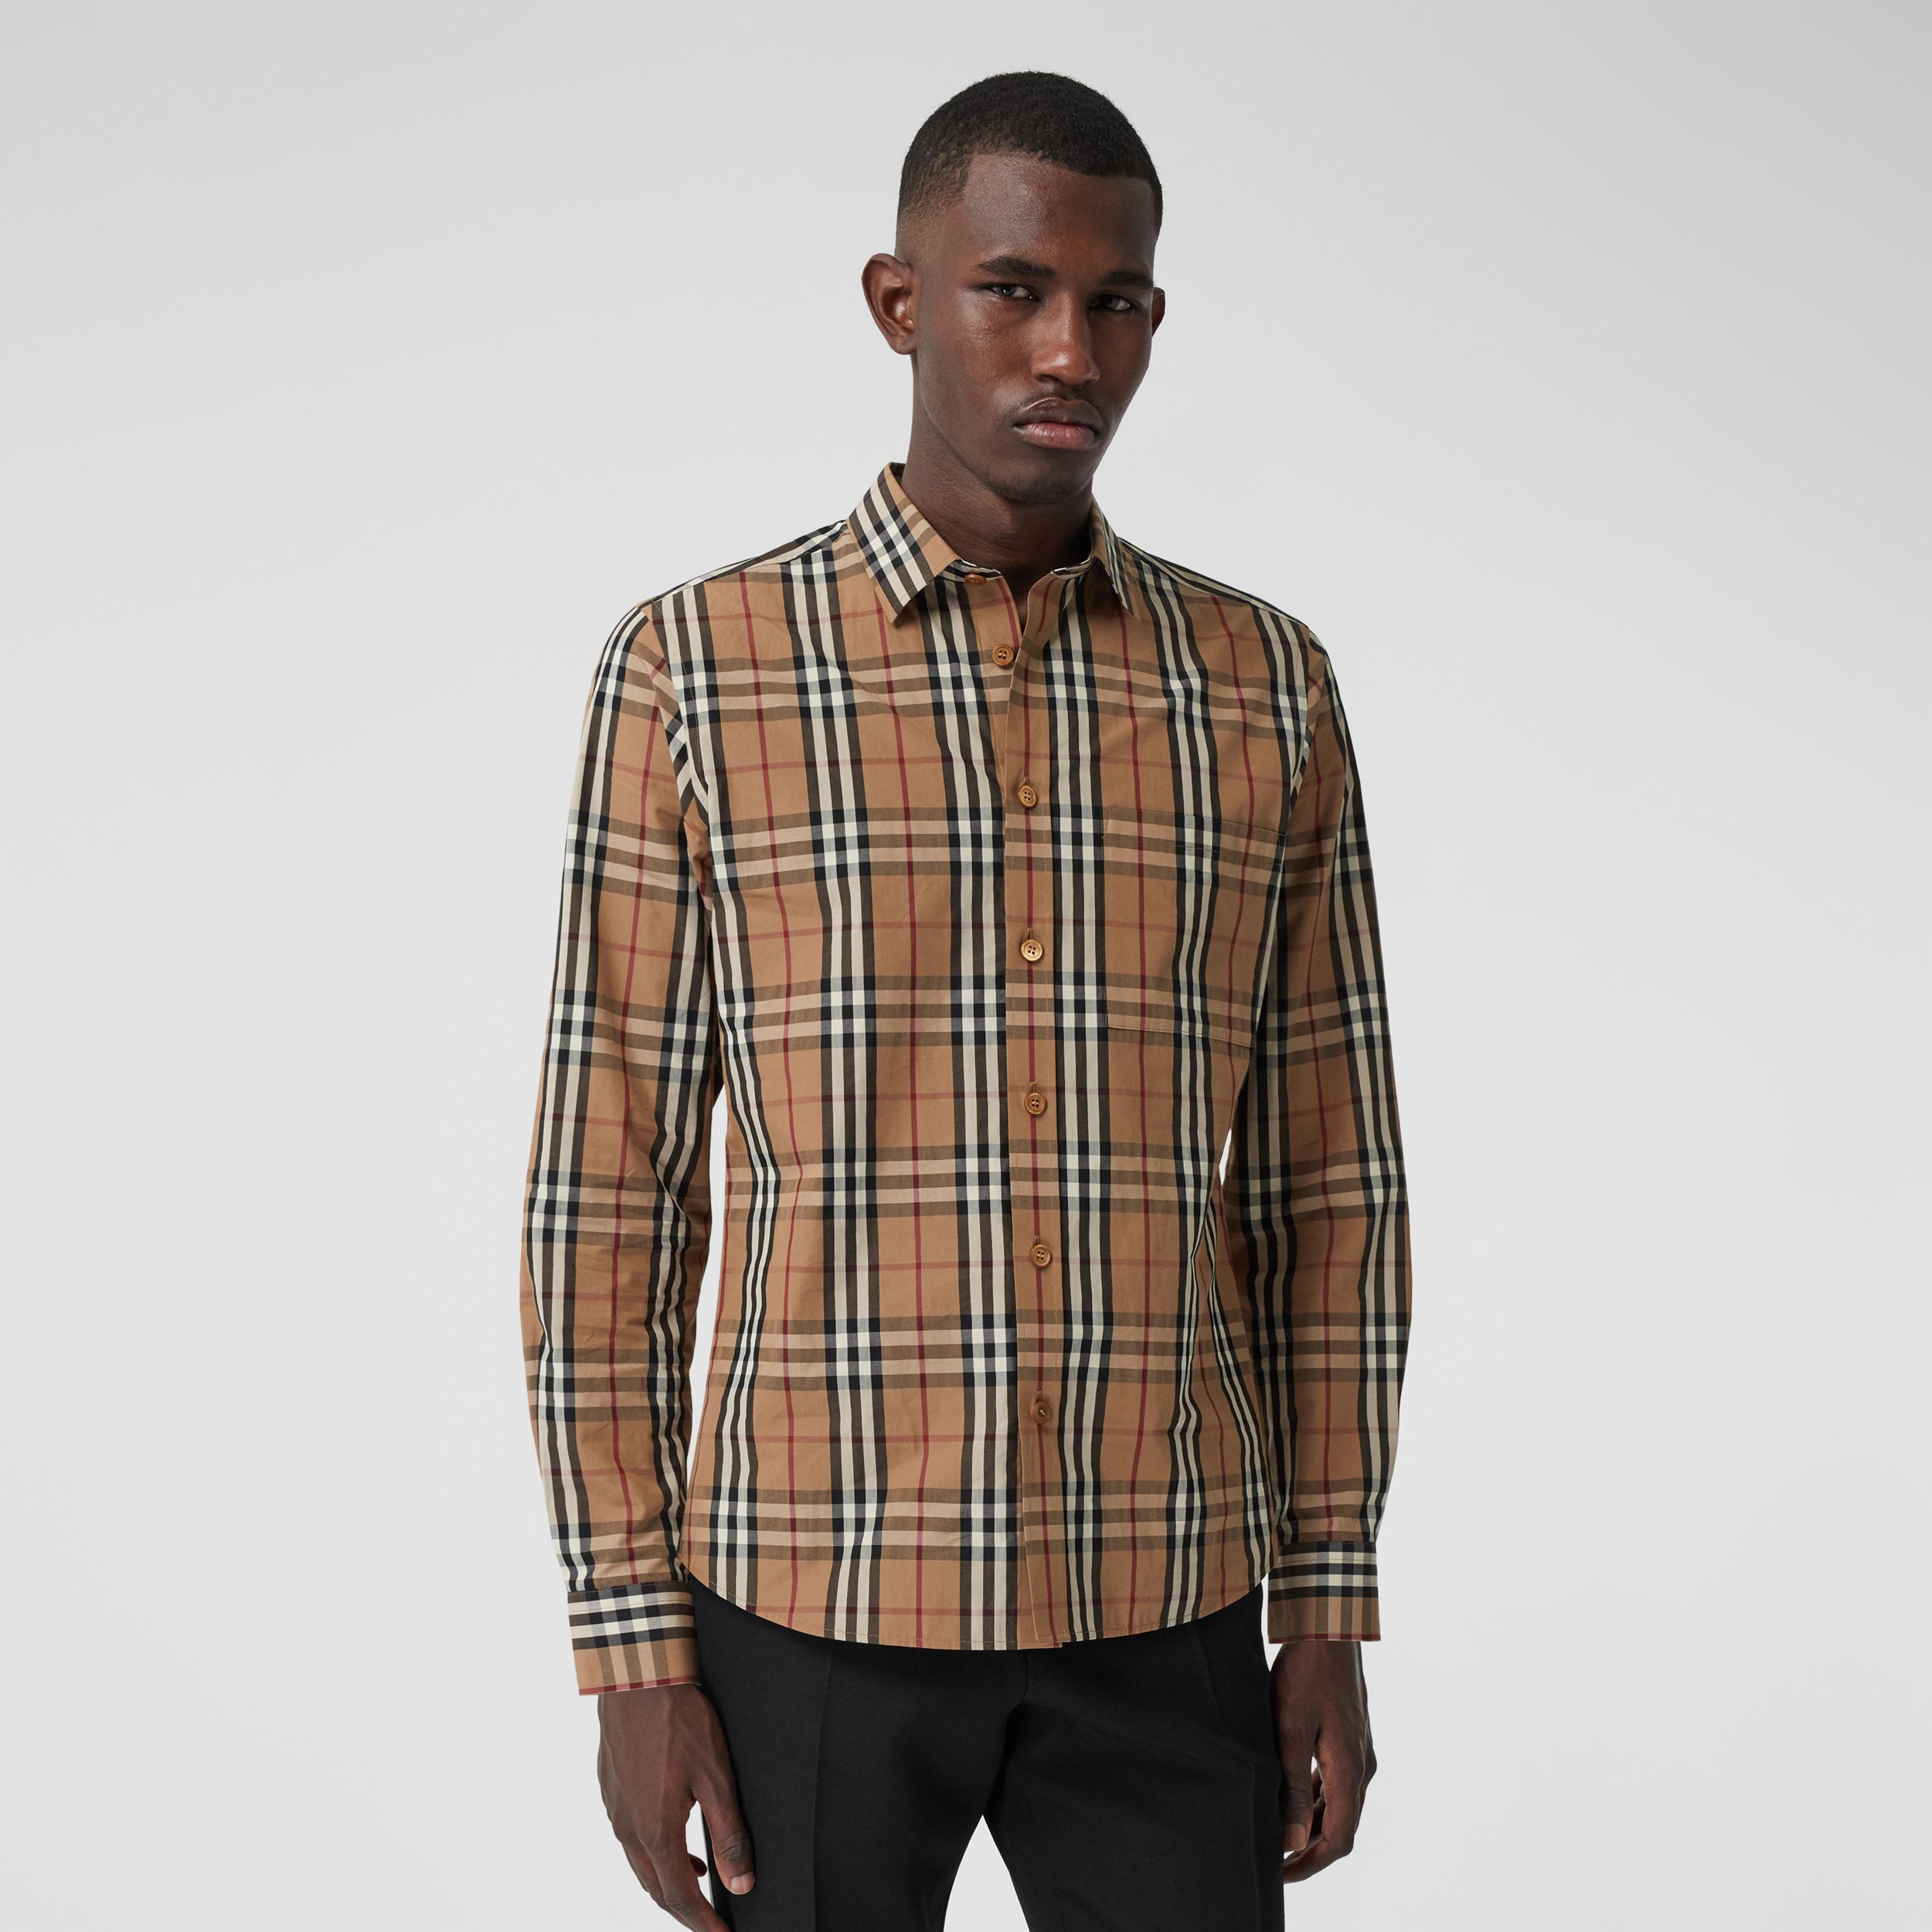 Vintage Check Cotton Poplin Shirt in Birch Brown | Burberry Australia - 1